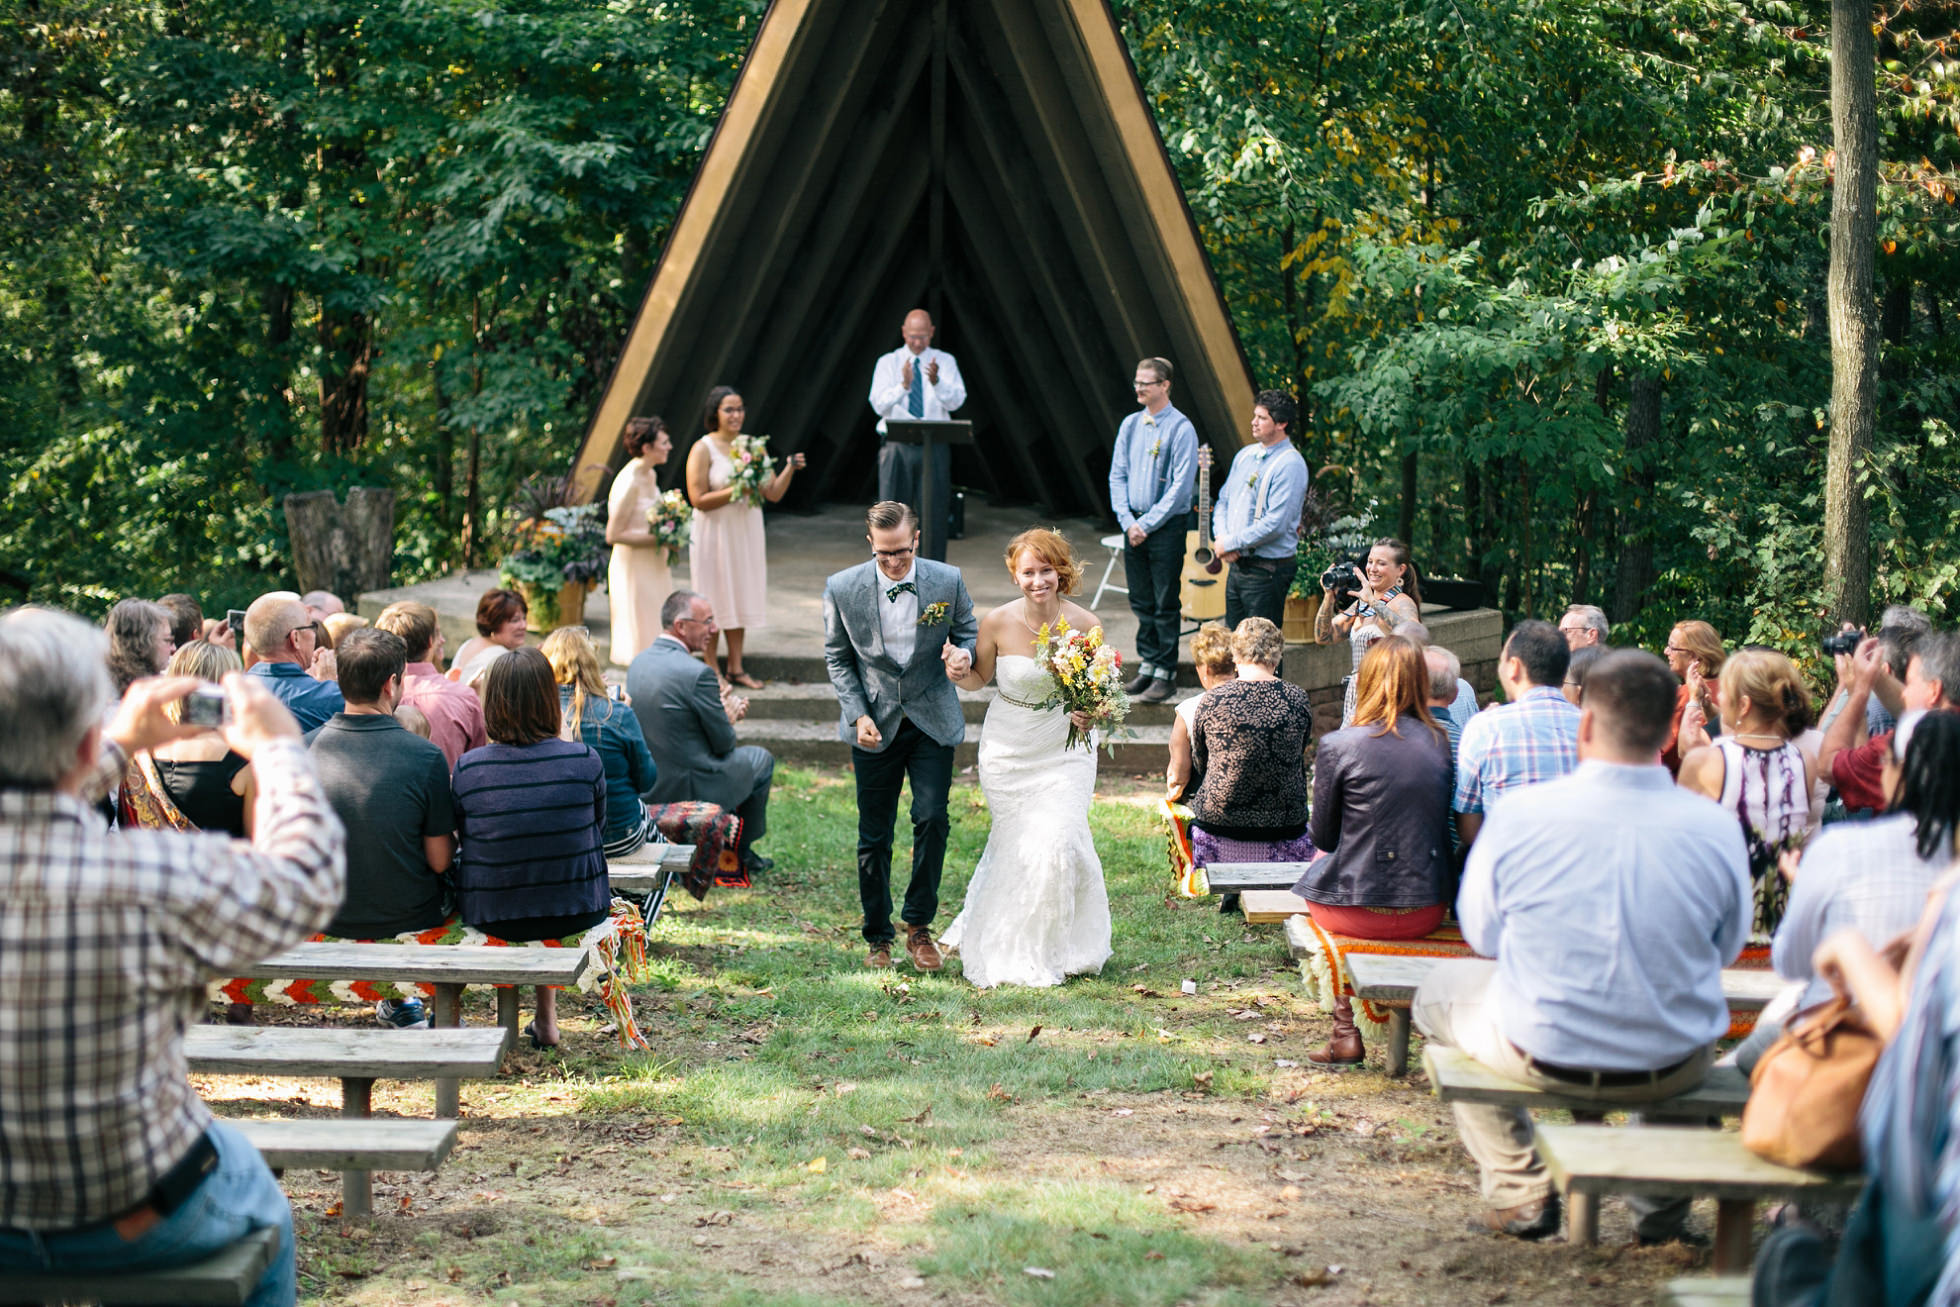 Camp Mack, Newmanstown PA Wedding | Modern, Boy Scout Camp, Bonfire, Wes Anderson Inspired | http://brittneyraine.com